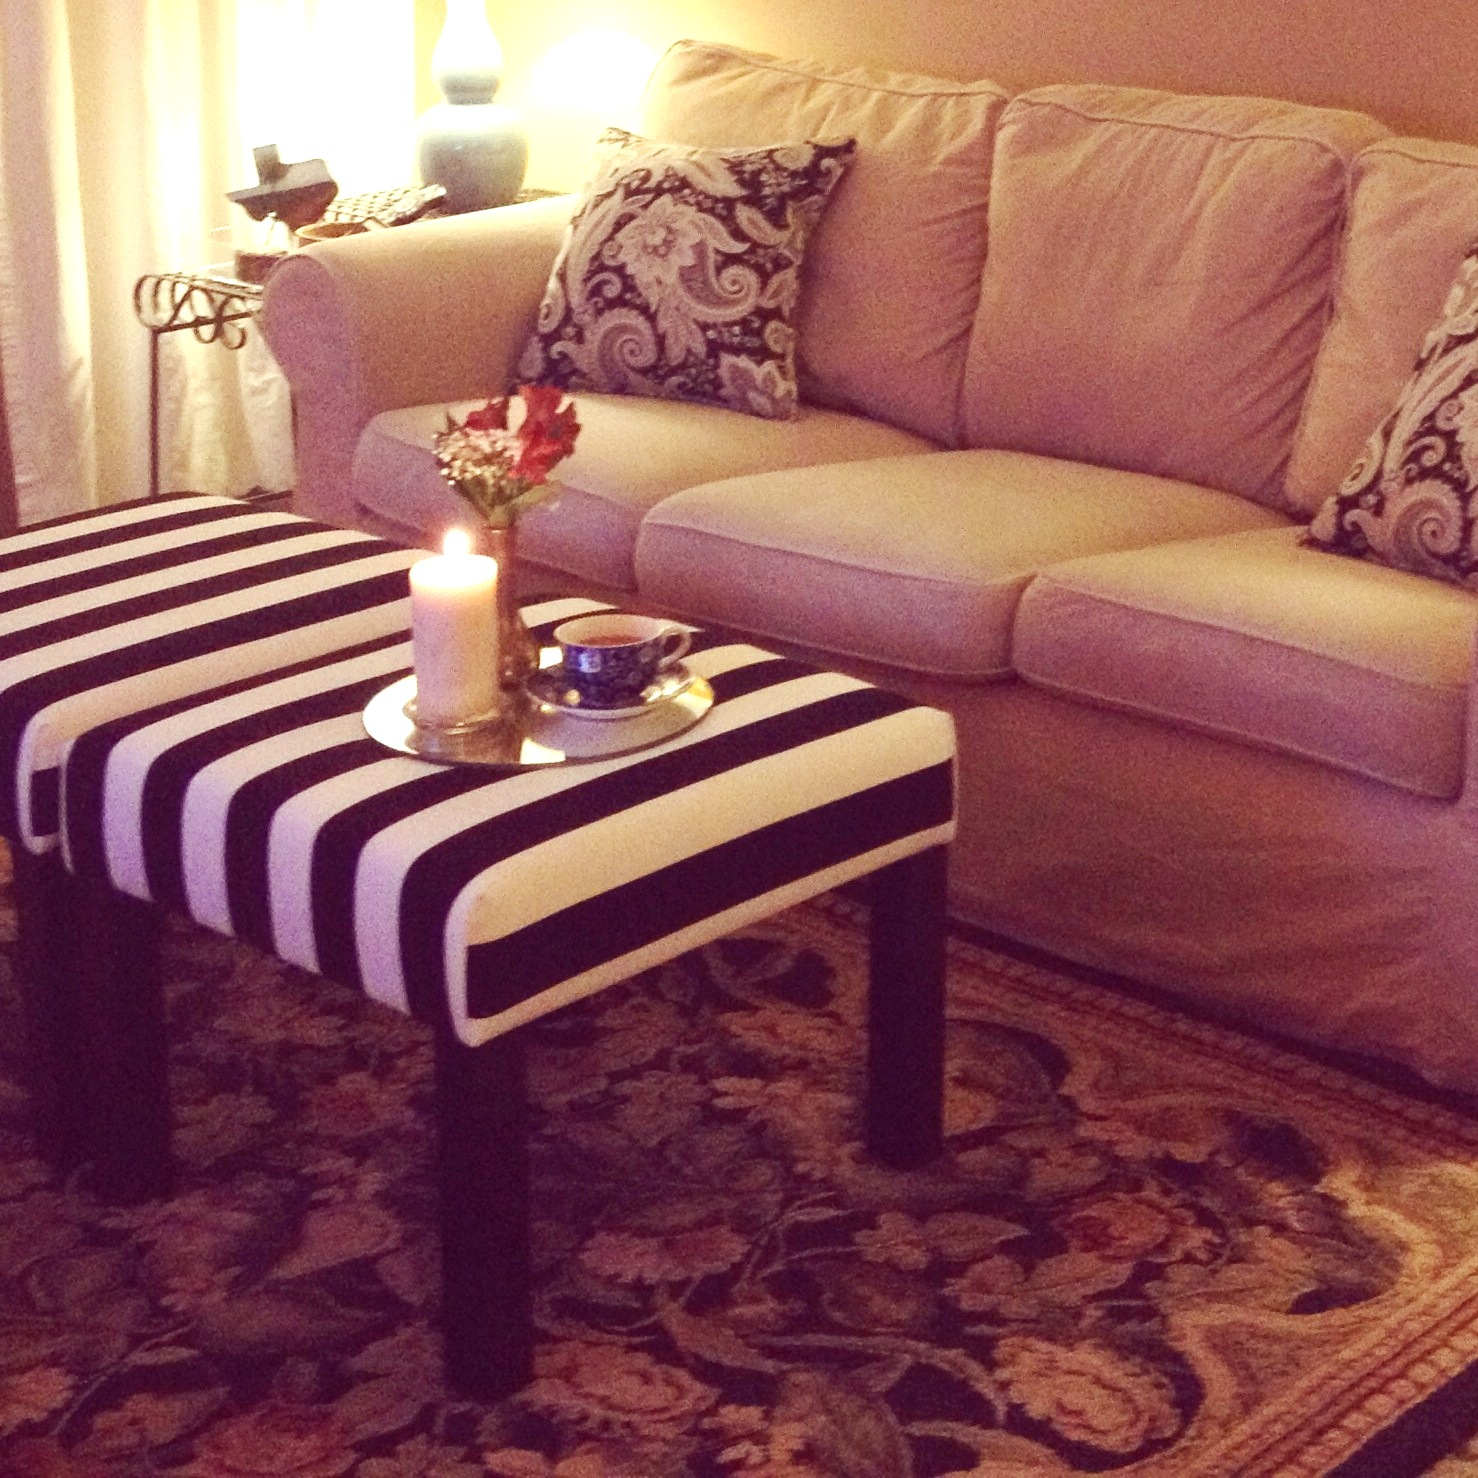 Turned to design ikea lack side tables turned ottomans - Transformar muebles ikea ...